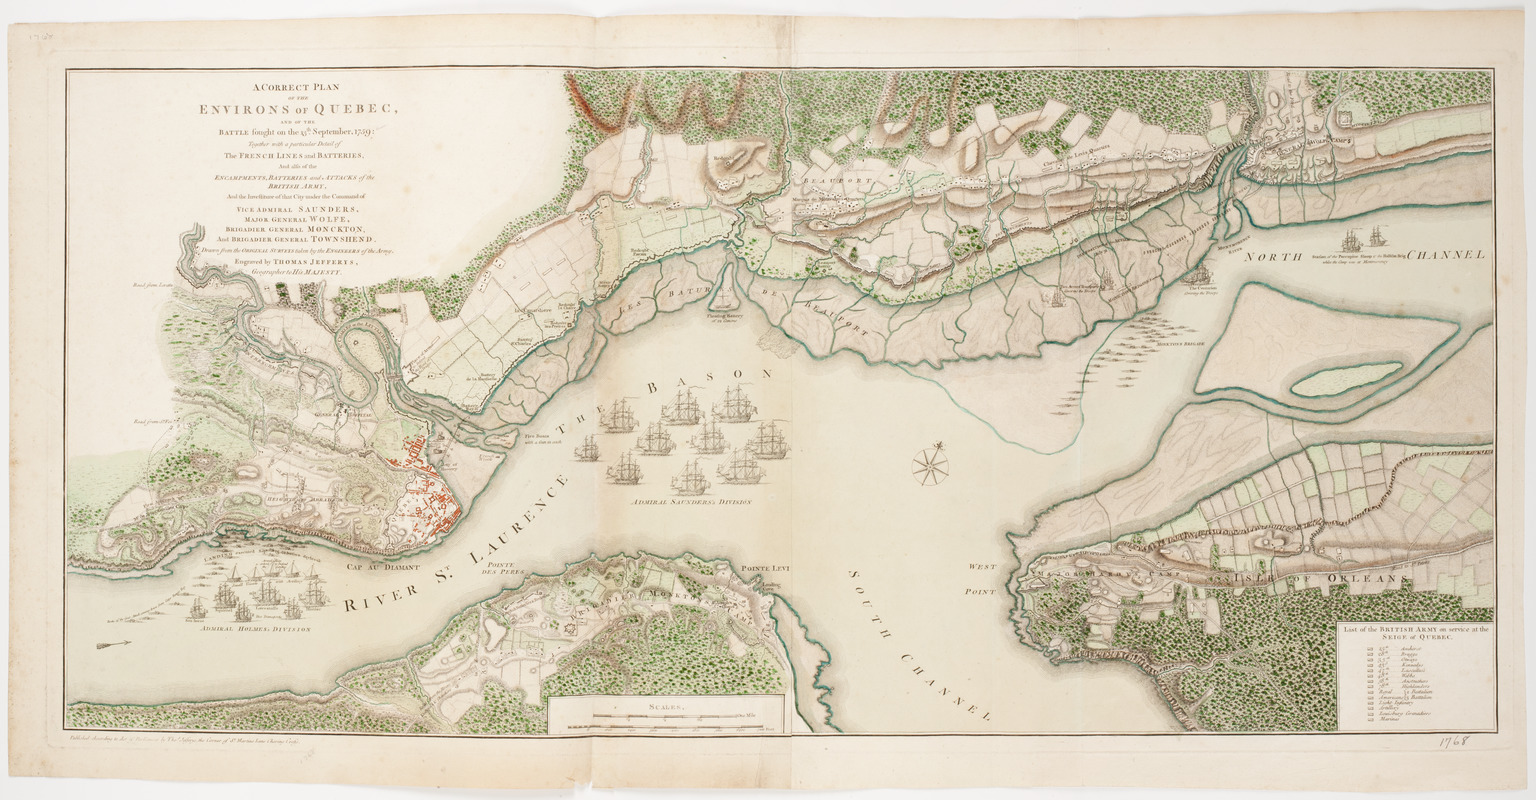 A Correct plan of the environs of Quebec,